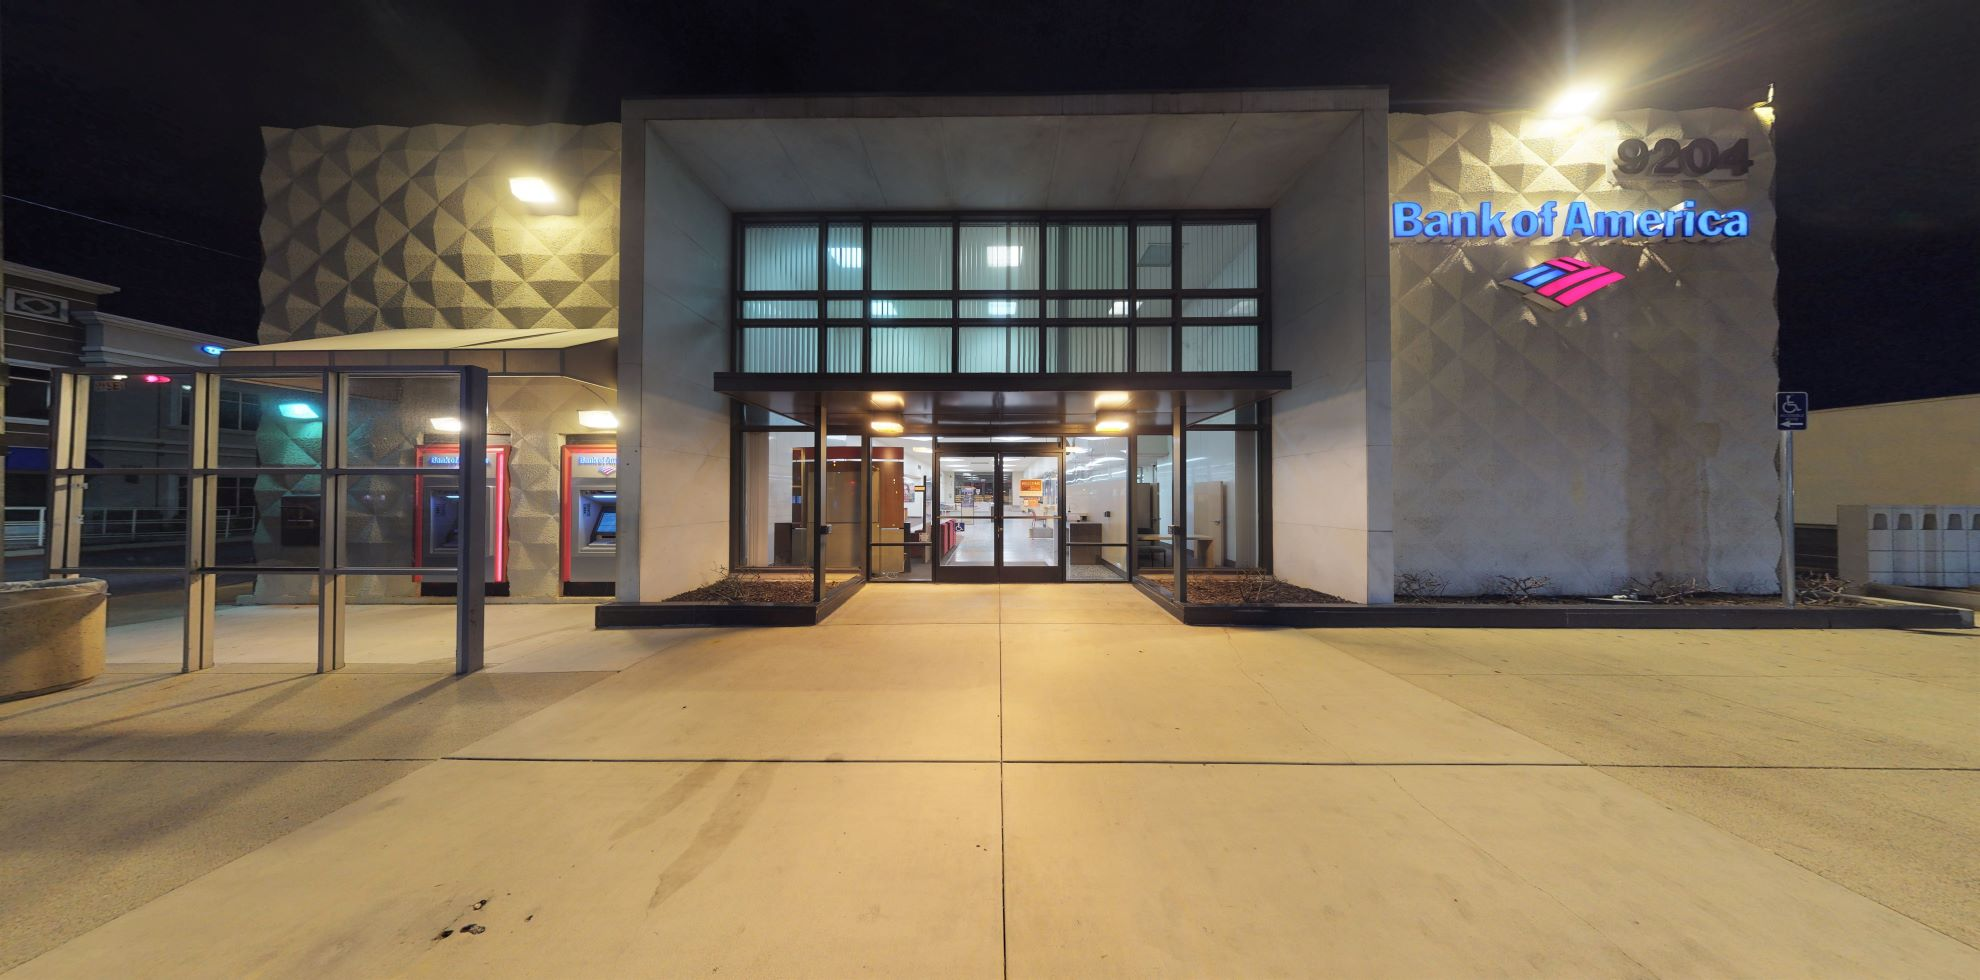 Bank of America financial center with walk-up ATM   9204 Magnolia Ave, Riverside, CA 92503